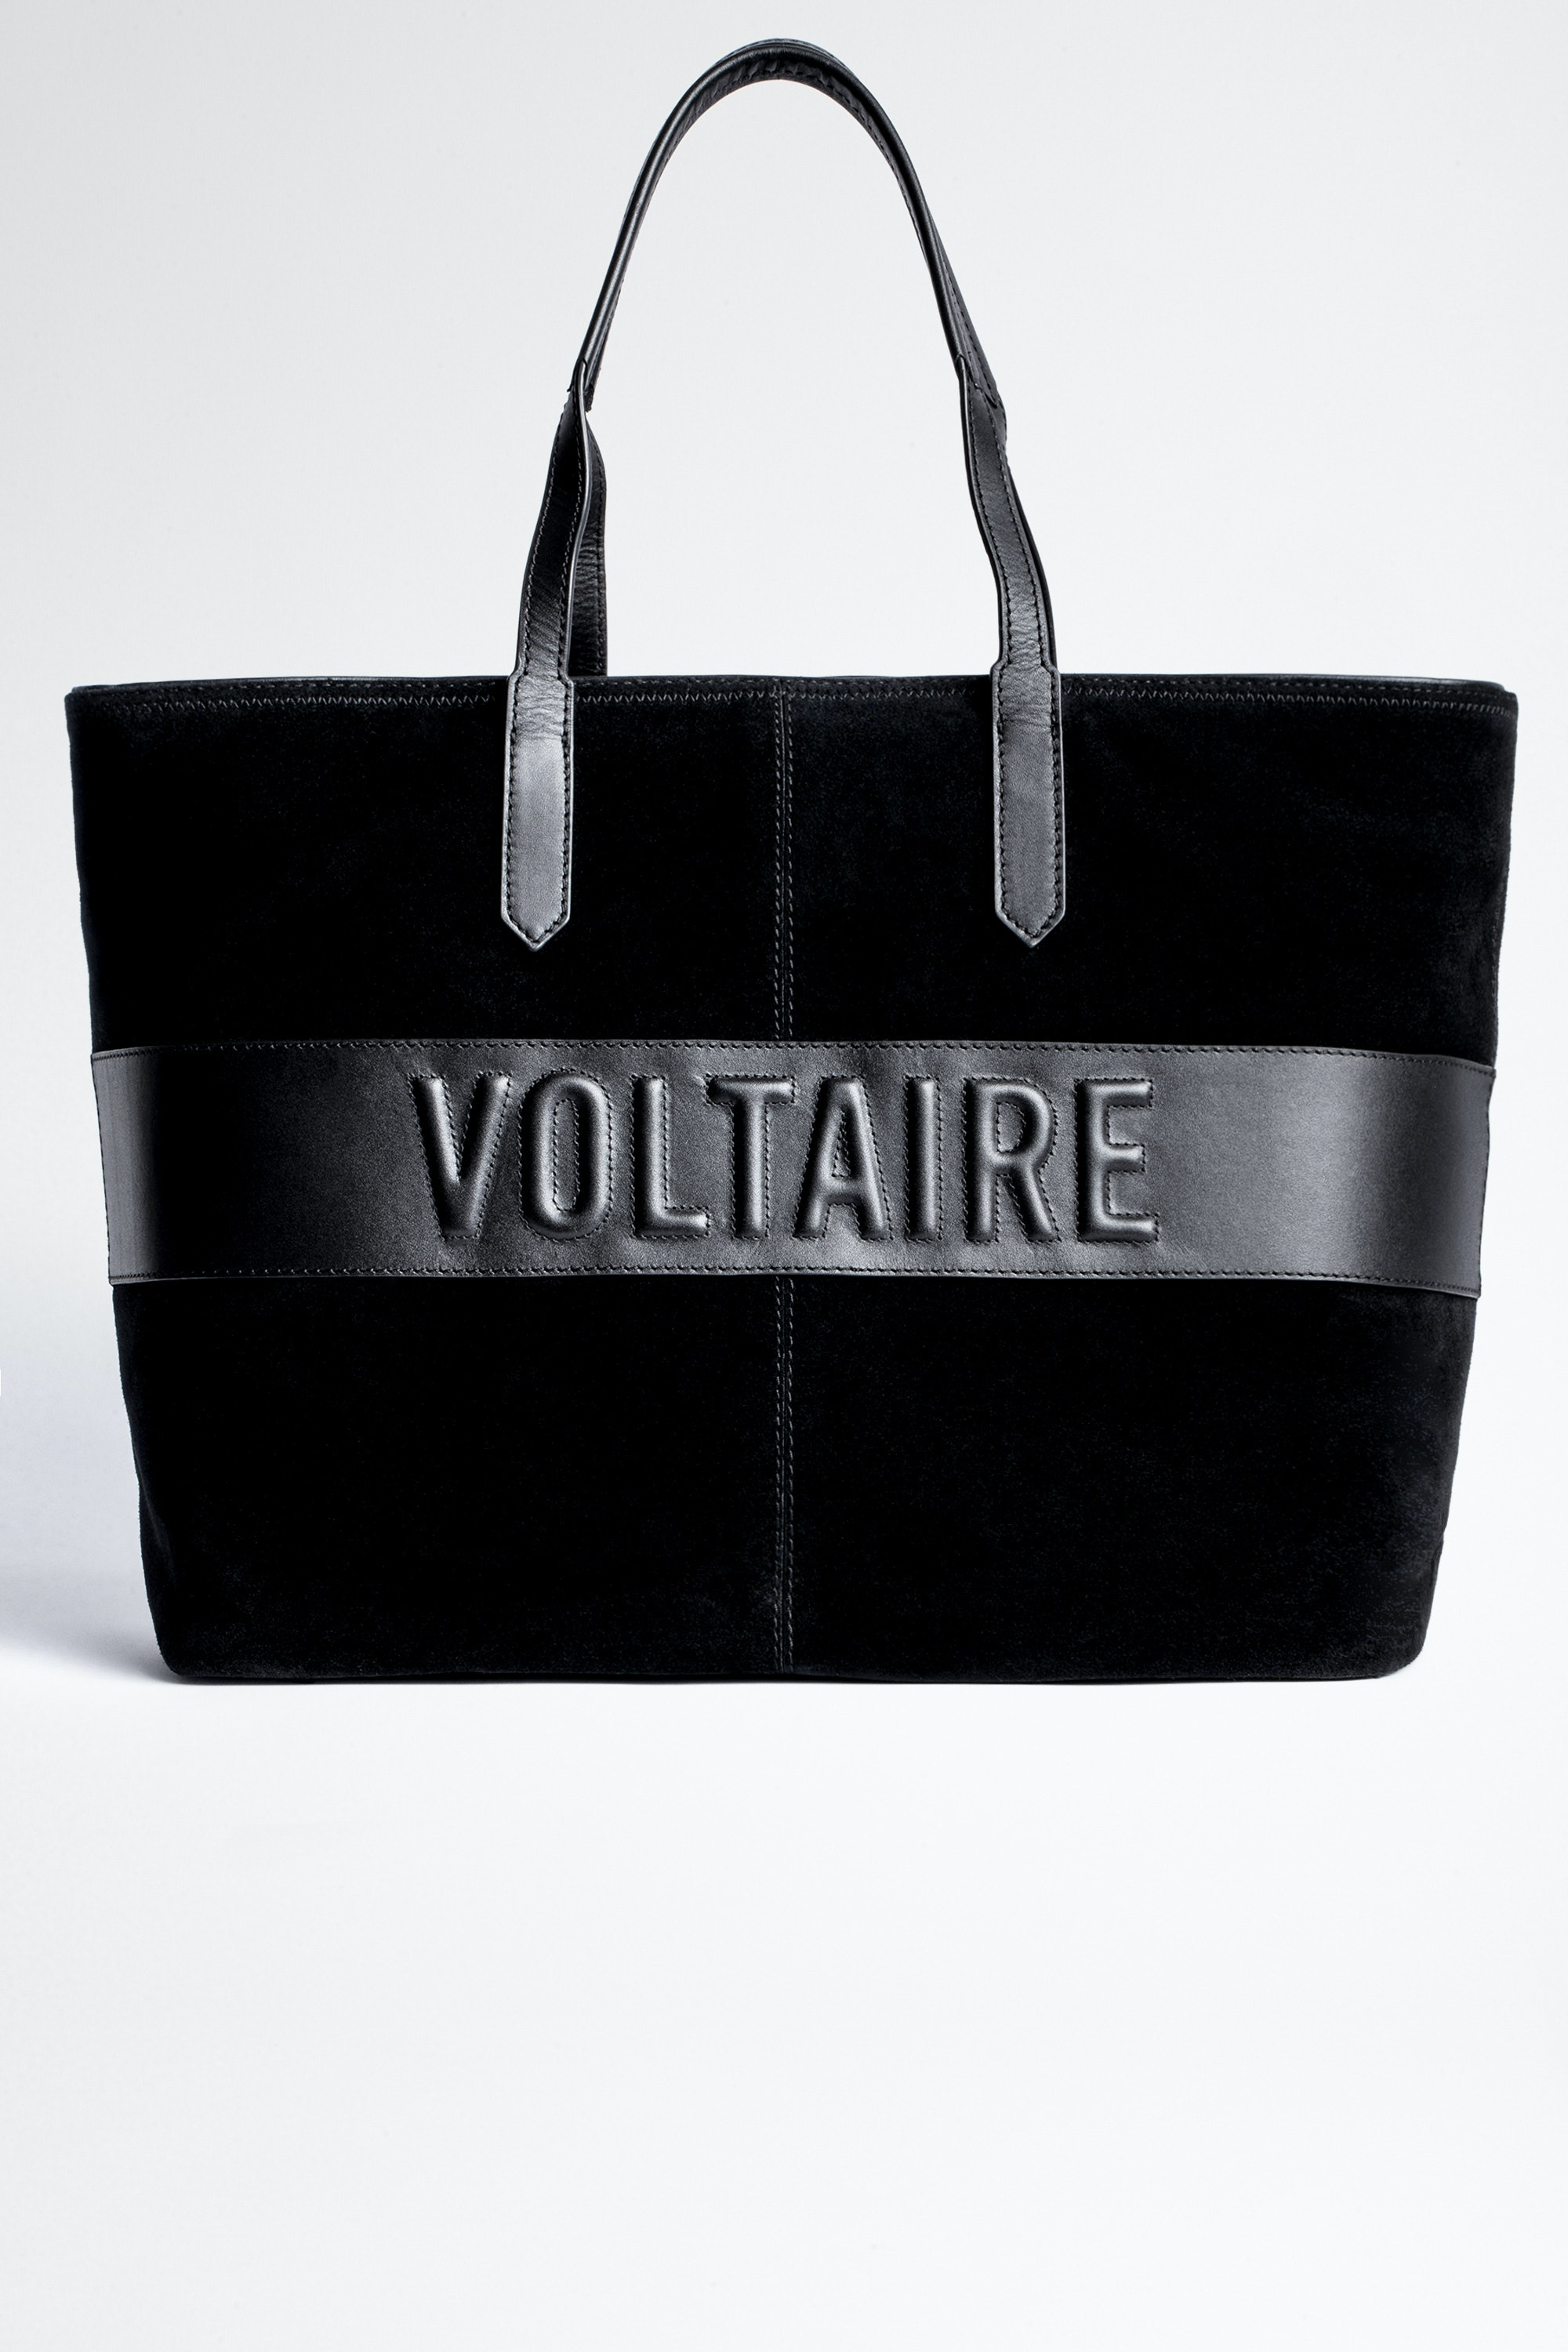 Sac Mick Voltaire